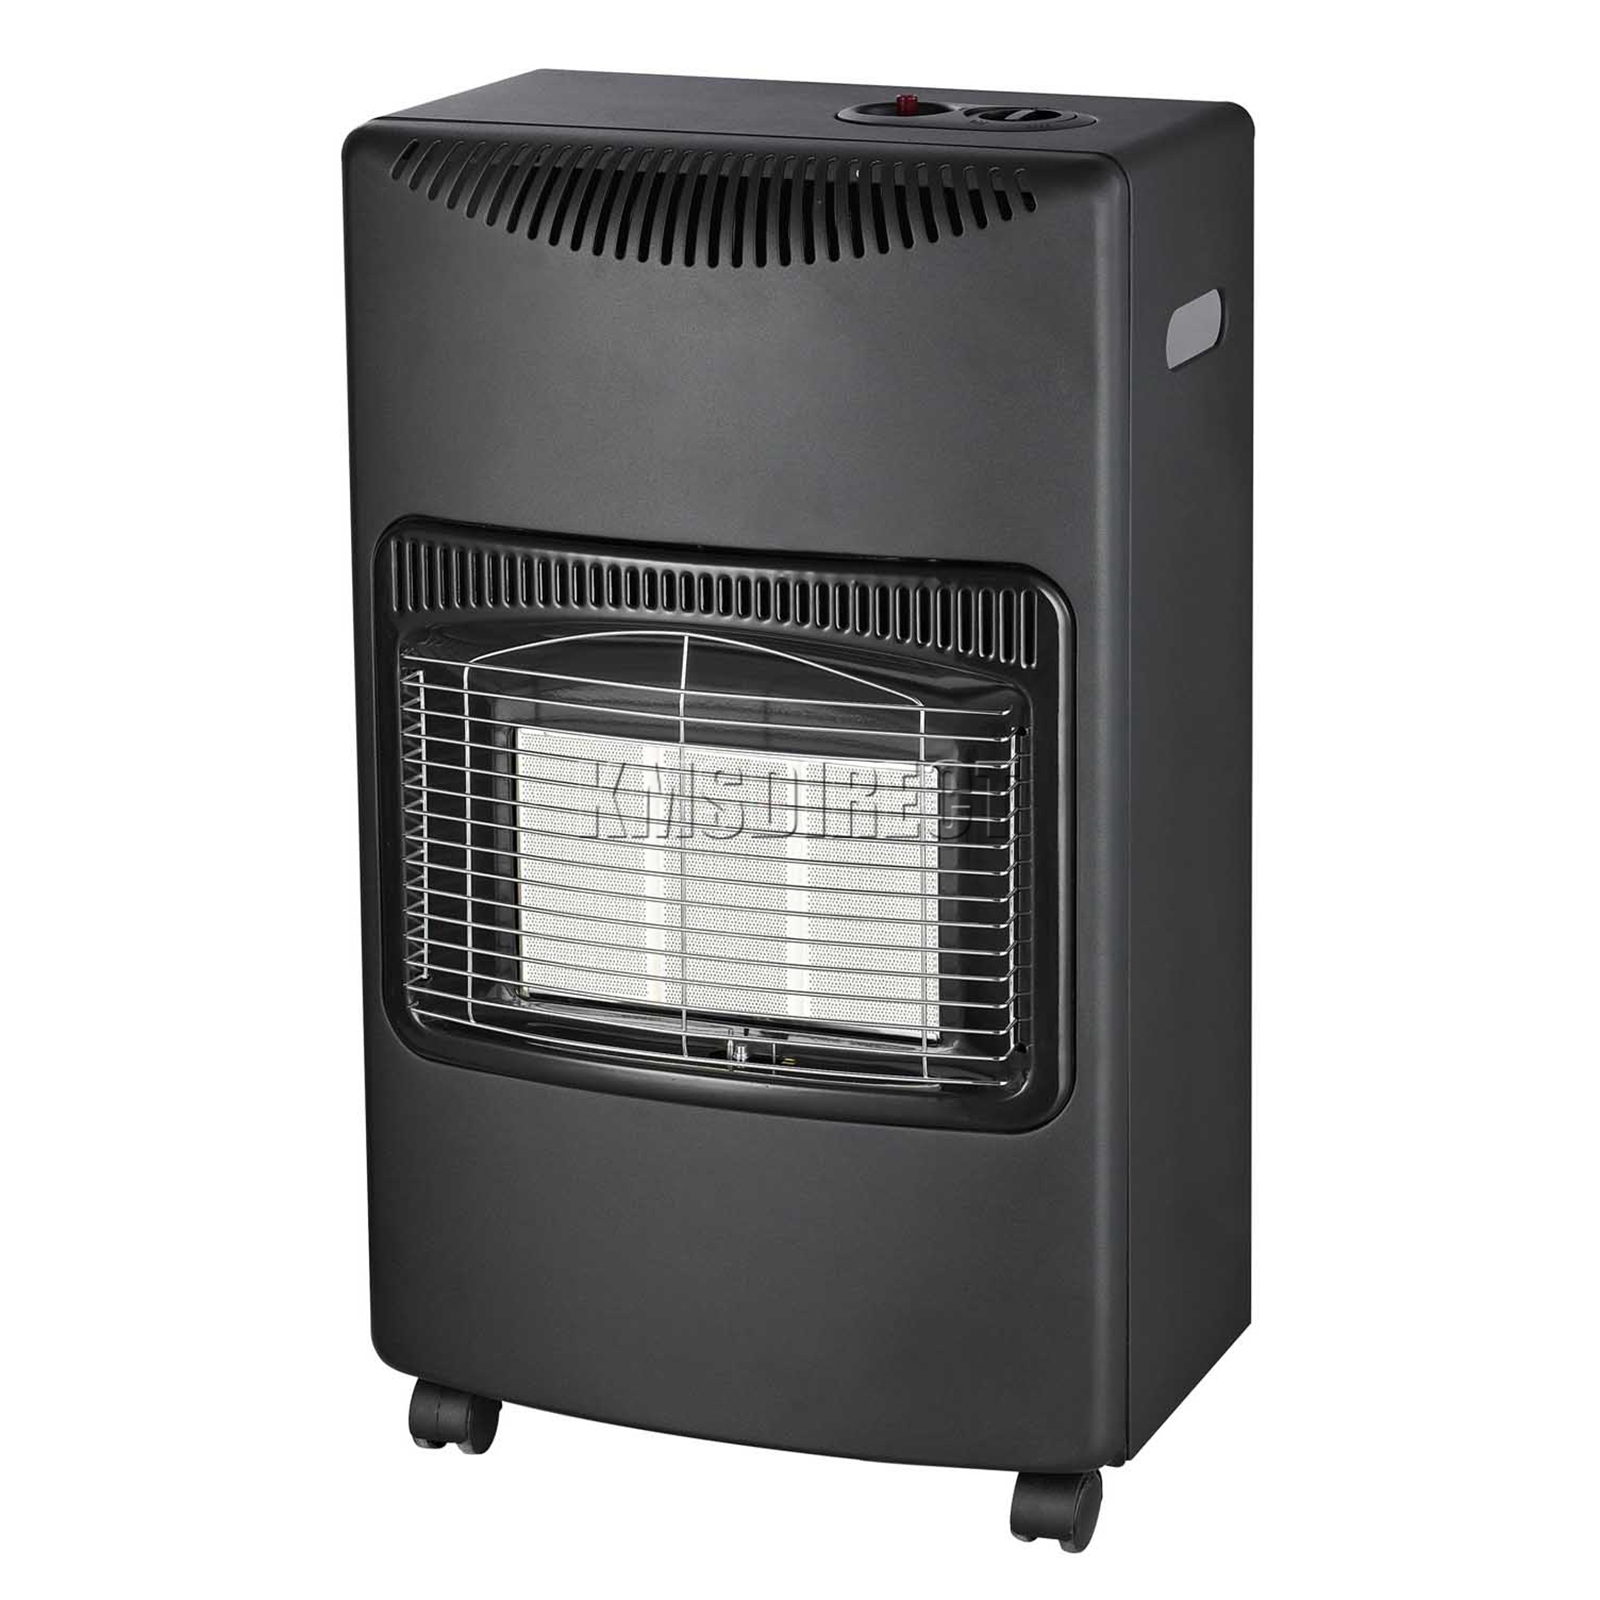 4 2kw portable home butane fire calor gas cabinet heater. Black Bedroom Furniture Sets. Home Design Ideas